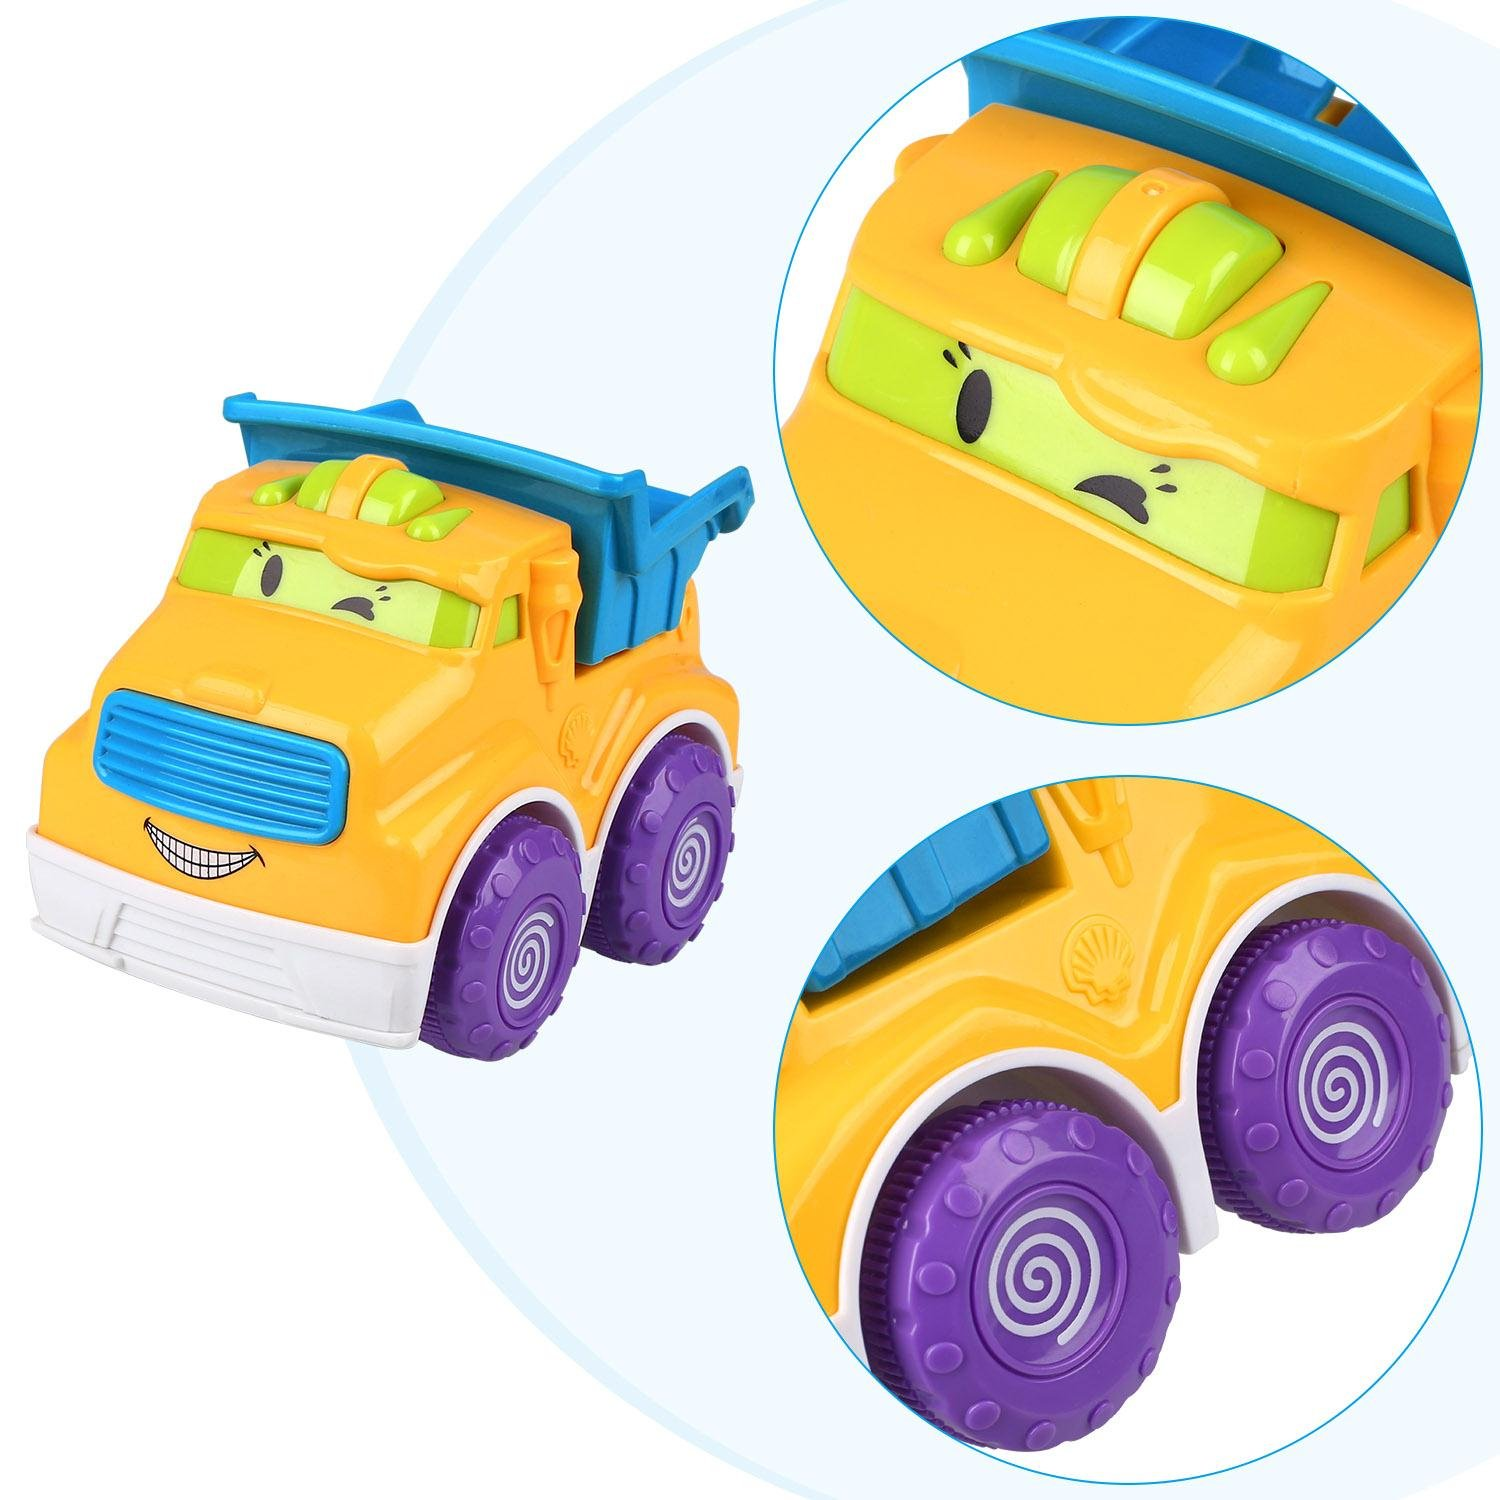 Pull Back Cars Push and Go Car Mini Construction Die Cast Vehicles and Raced Dump Truck Car Pretend Play Toy Model Kit Set Preschool Learning for Children Kids Toddlers Birthday Gift By Peradix